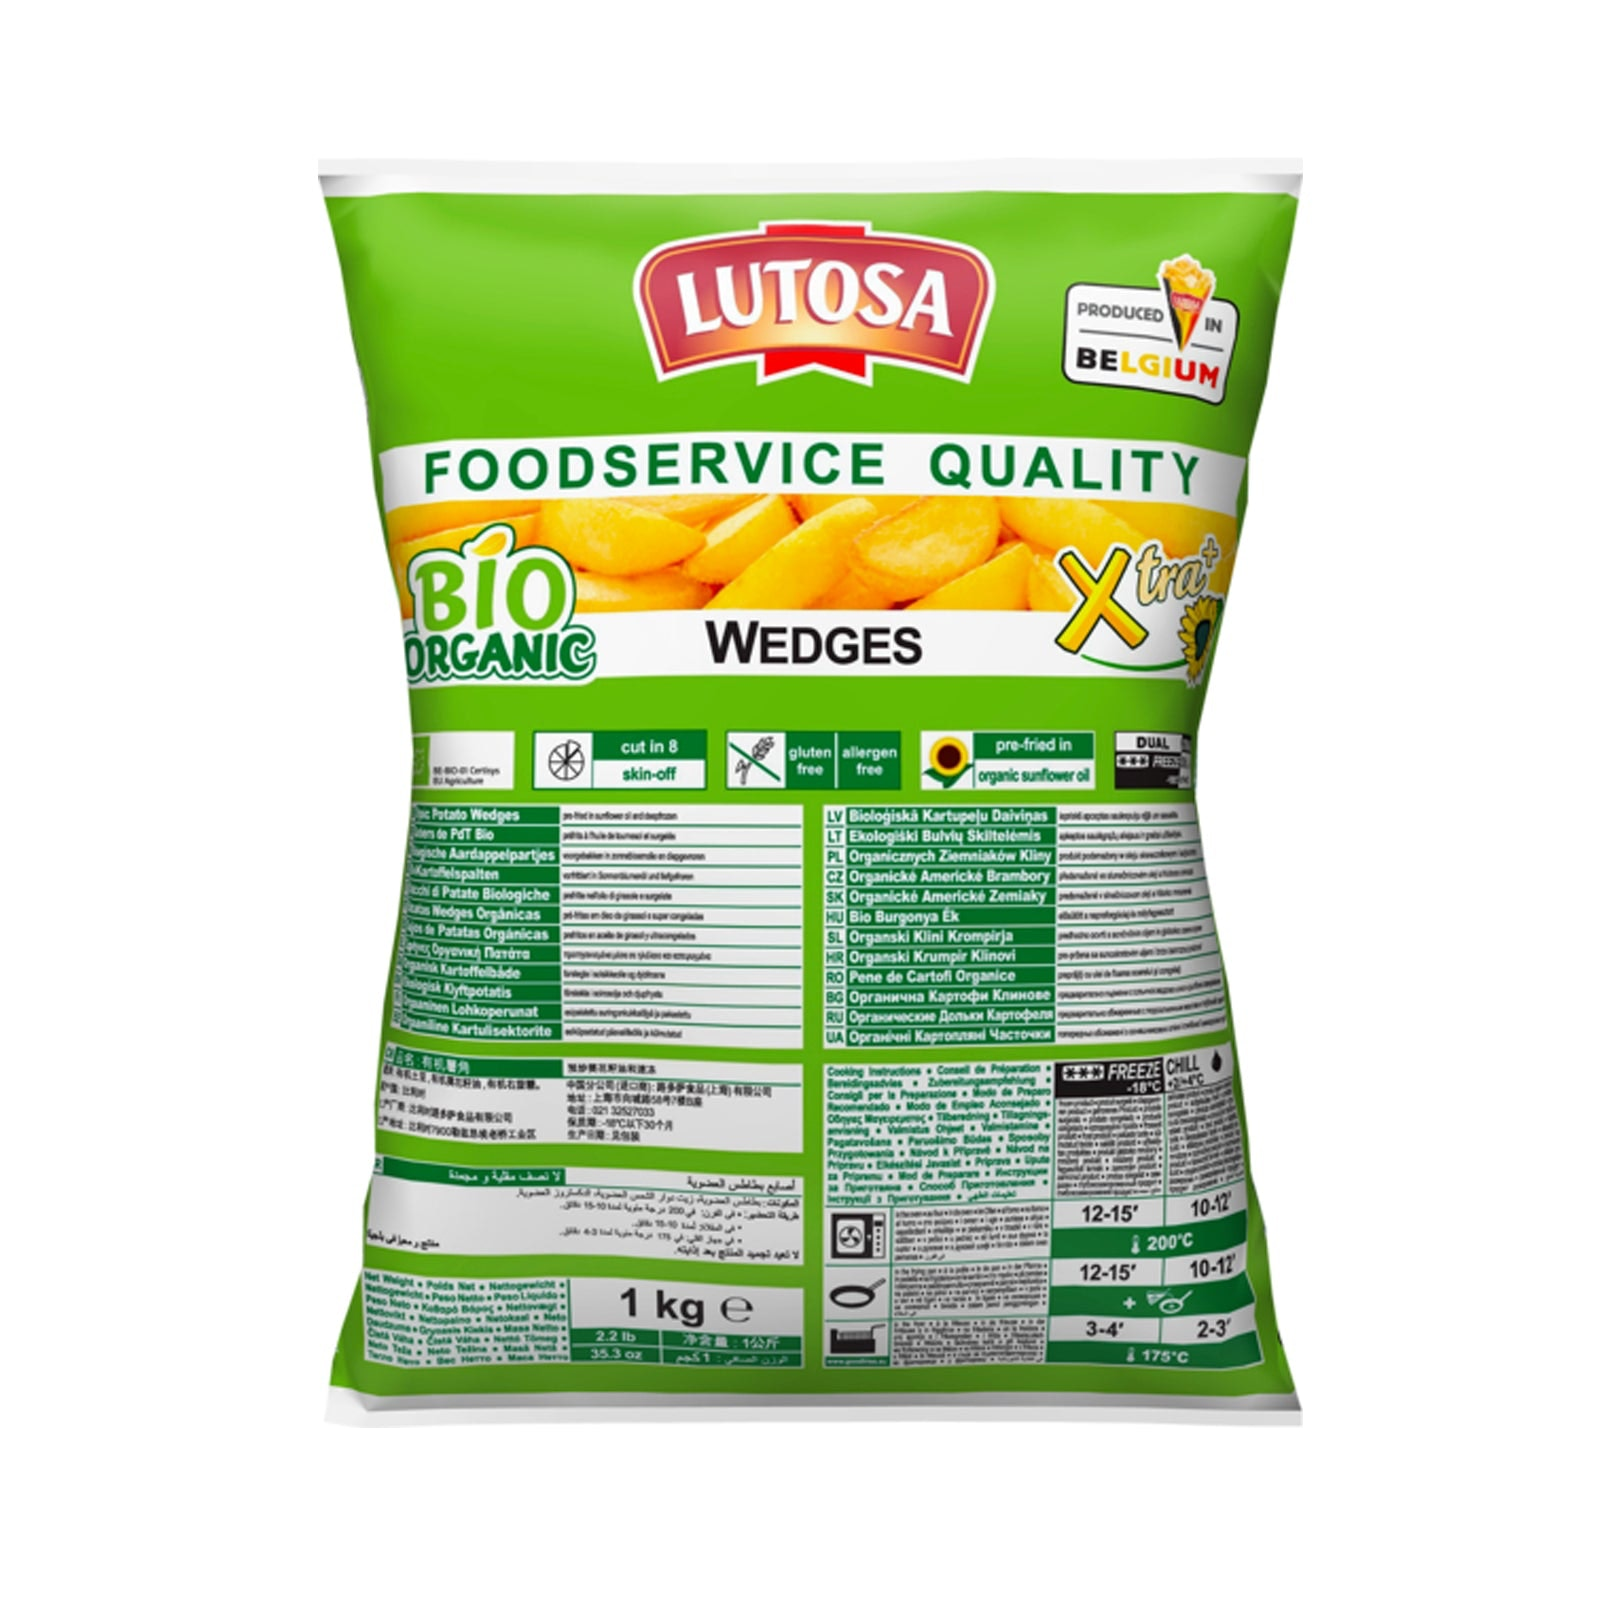 Lutosa Organic Wedge Cut Fries